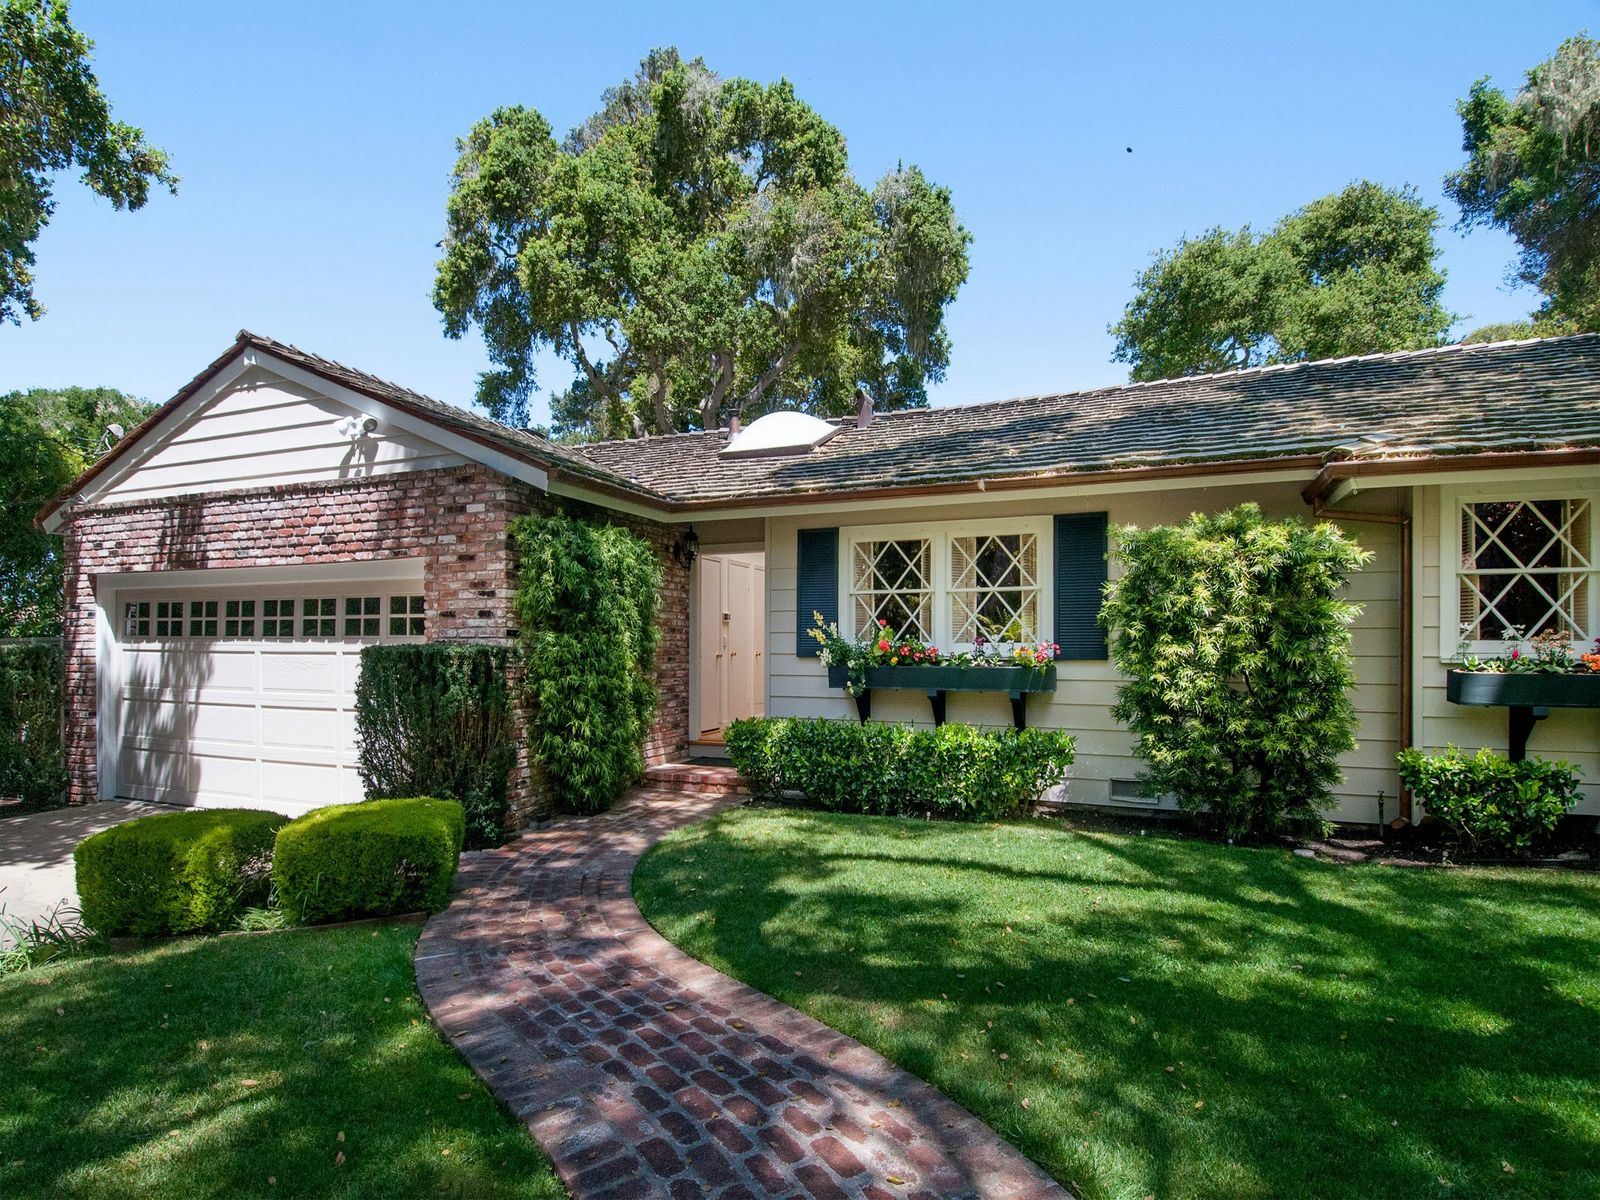 1093 Herders, Pebble Beach, Pebble Beach CA Single Family Home - Monterey Real Estate